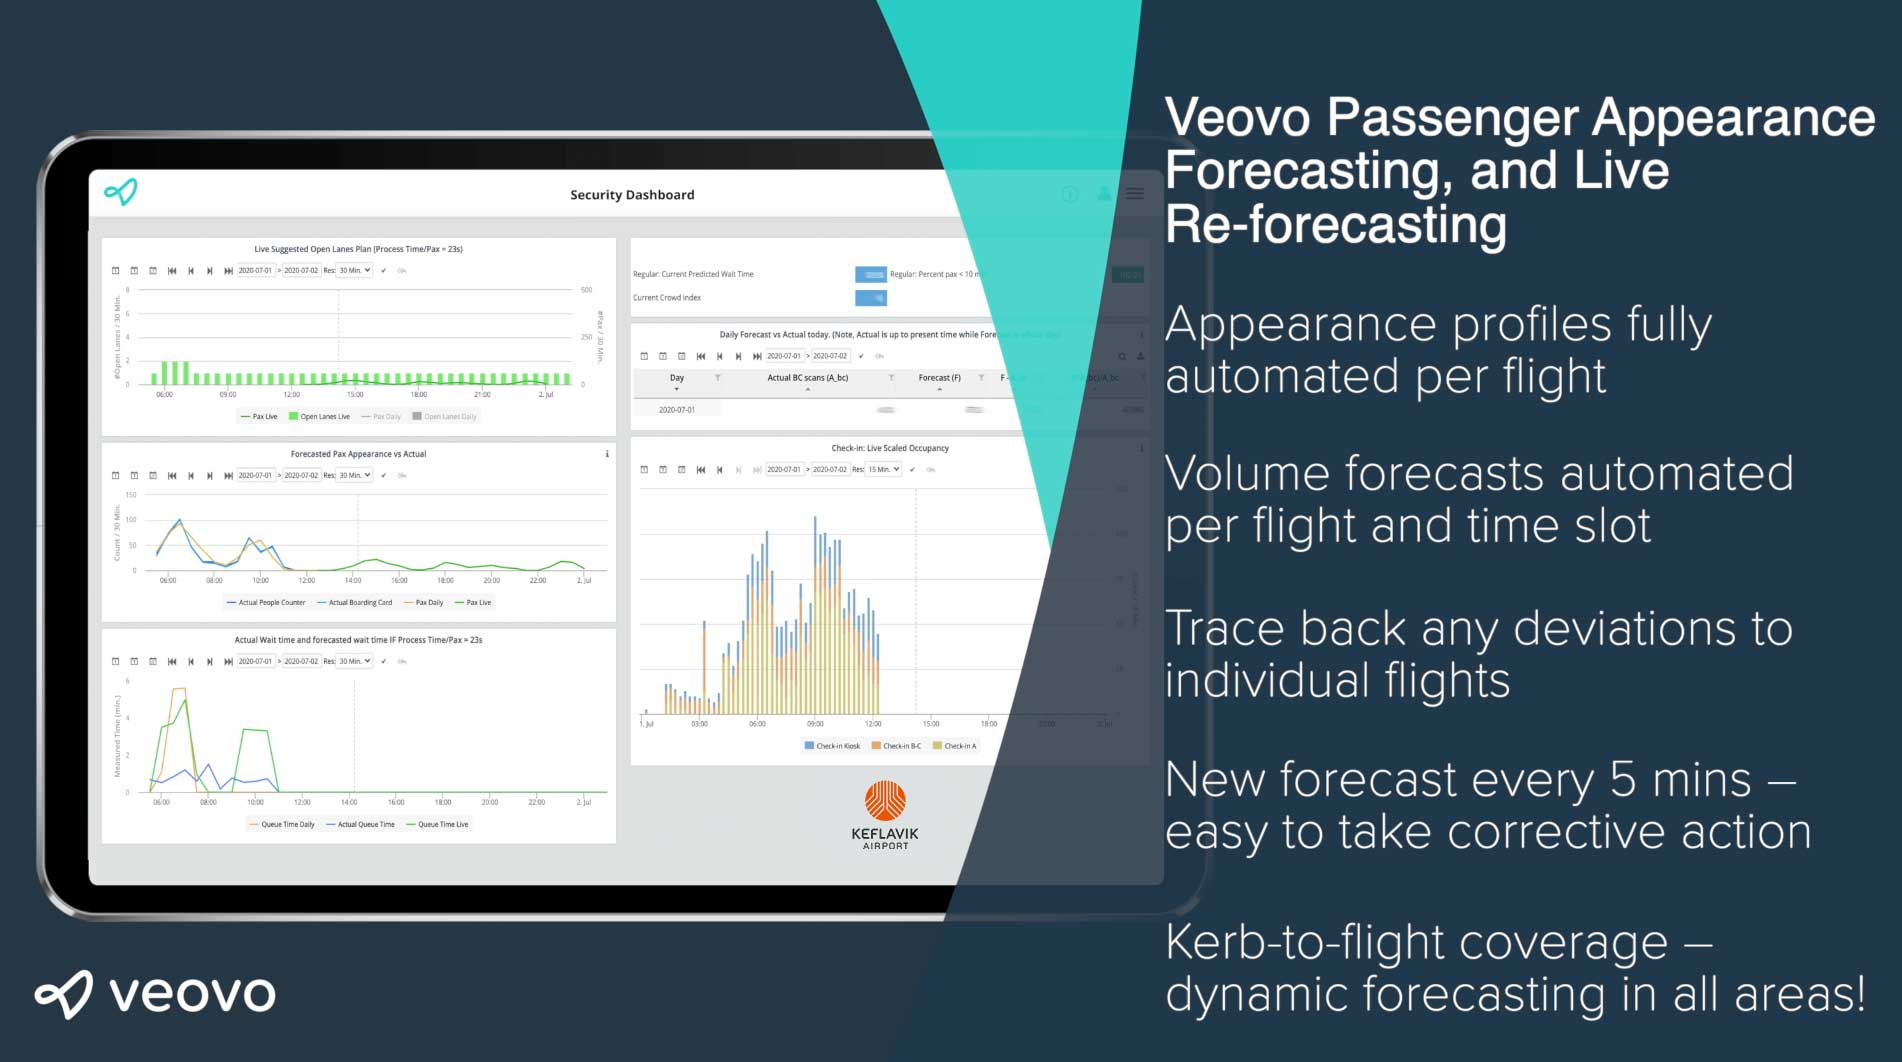 Dynamic forecasting keflavik airport veovo dashboard bullets